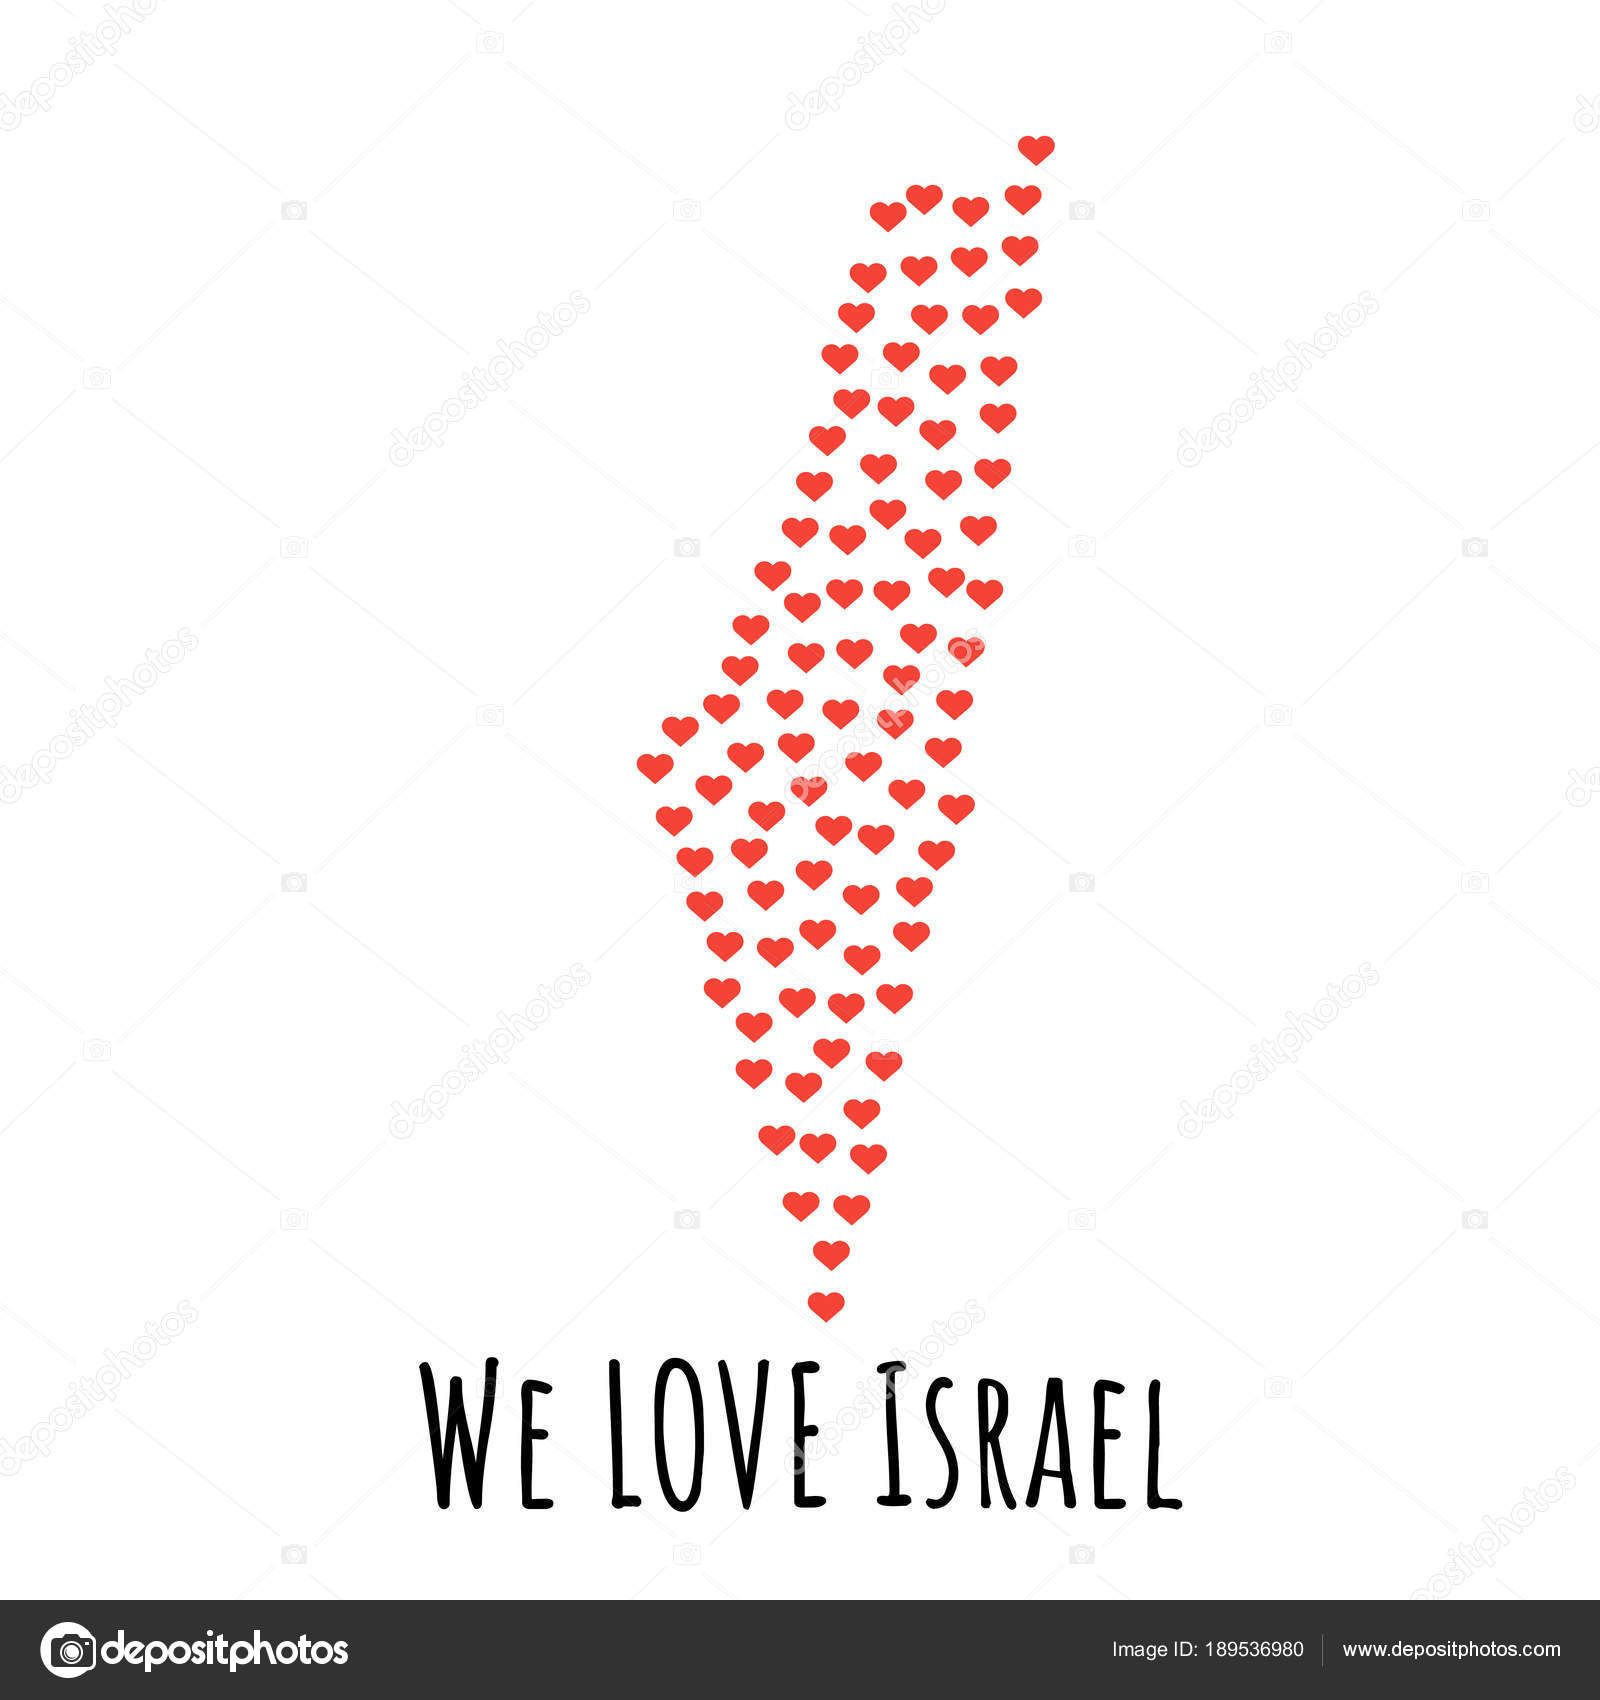 Israel Map With Red Hearts Symbol Of Love Abstract Background